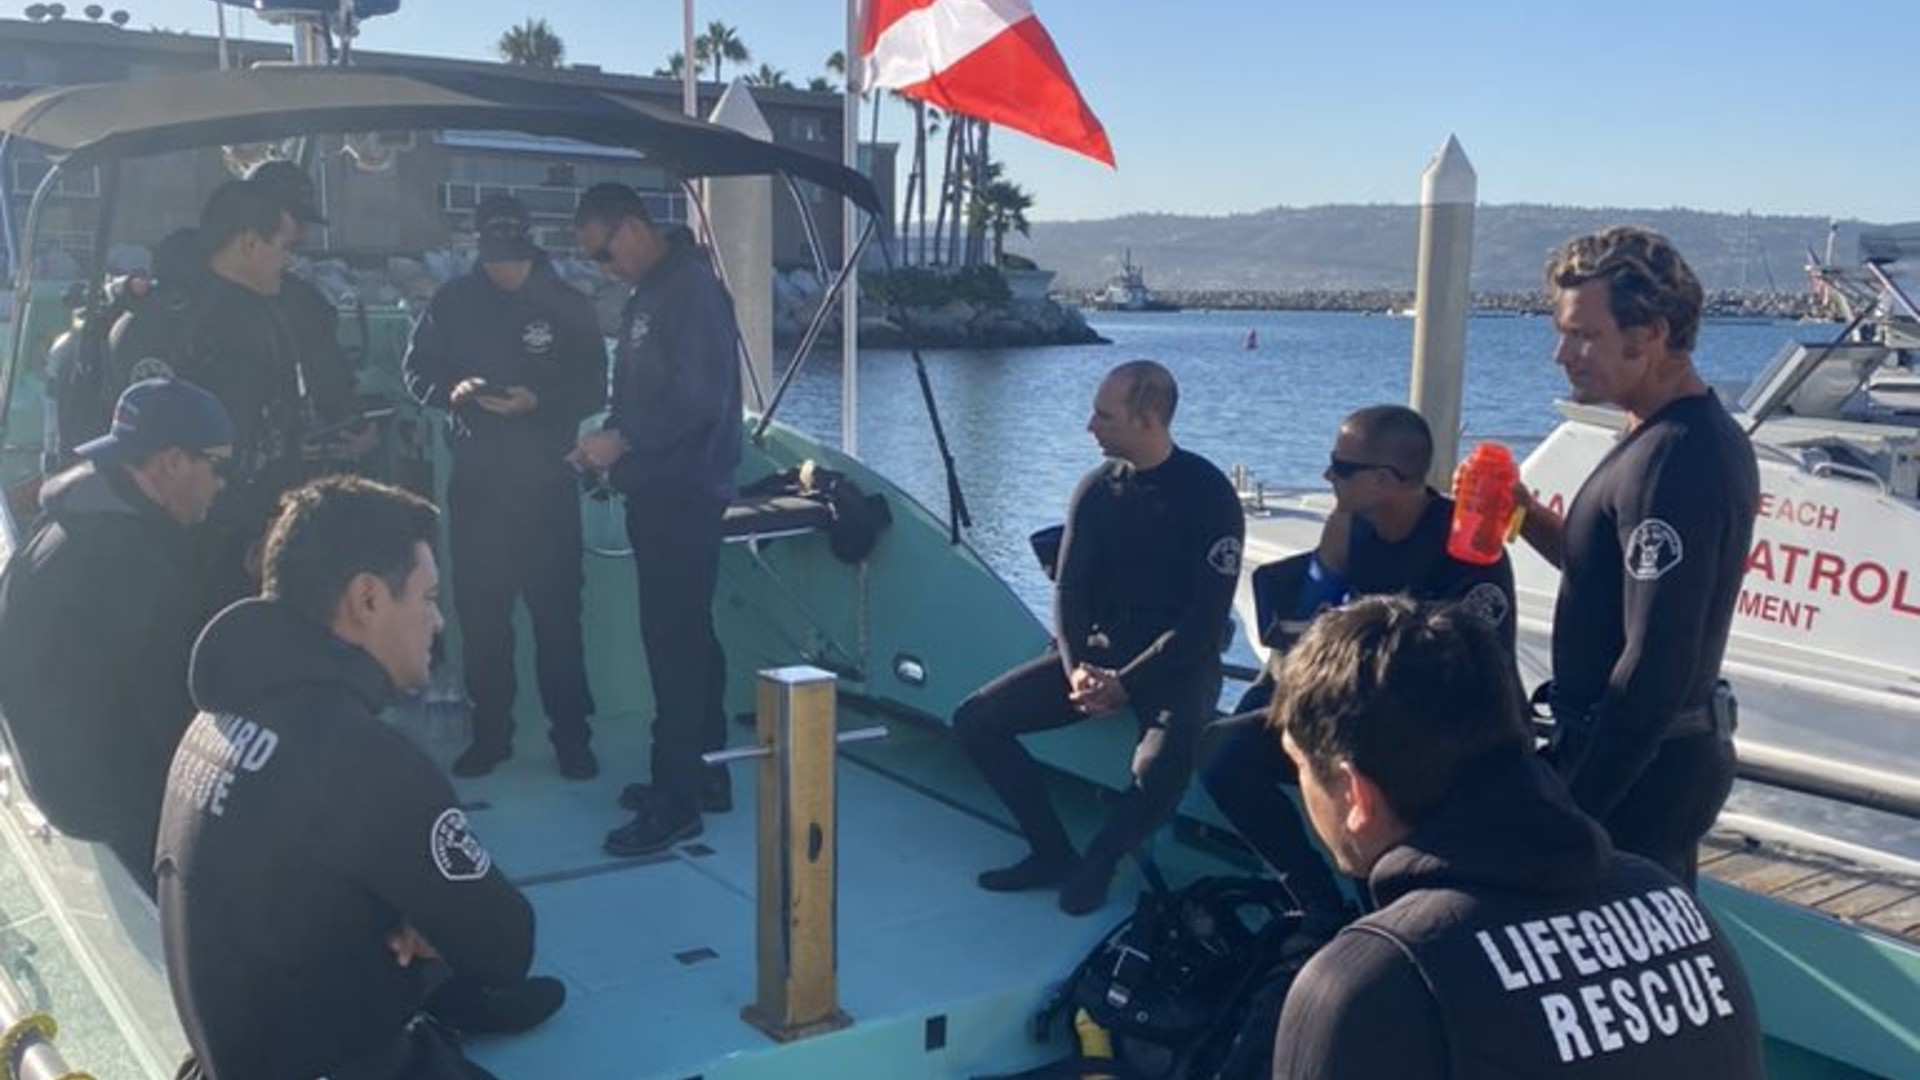 A lifeguard rescue team resumed their search for a missing swimmer near Redondo Beach on Oct. 12, 2021. (L.A. Co. Lifeguards)